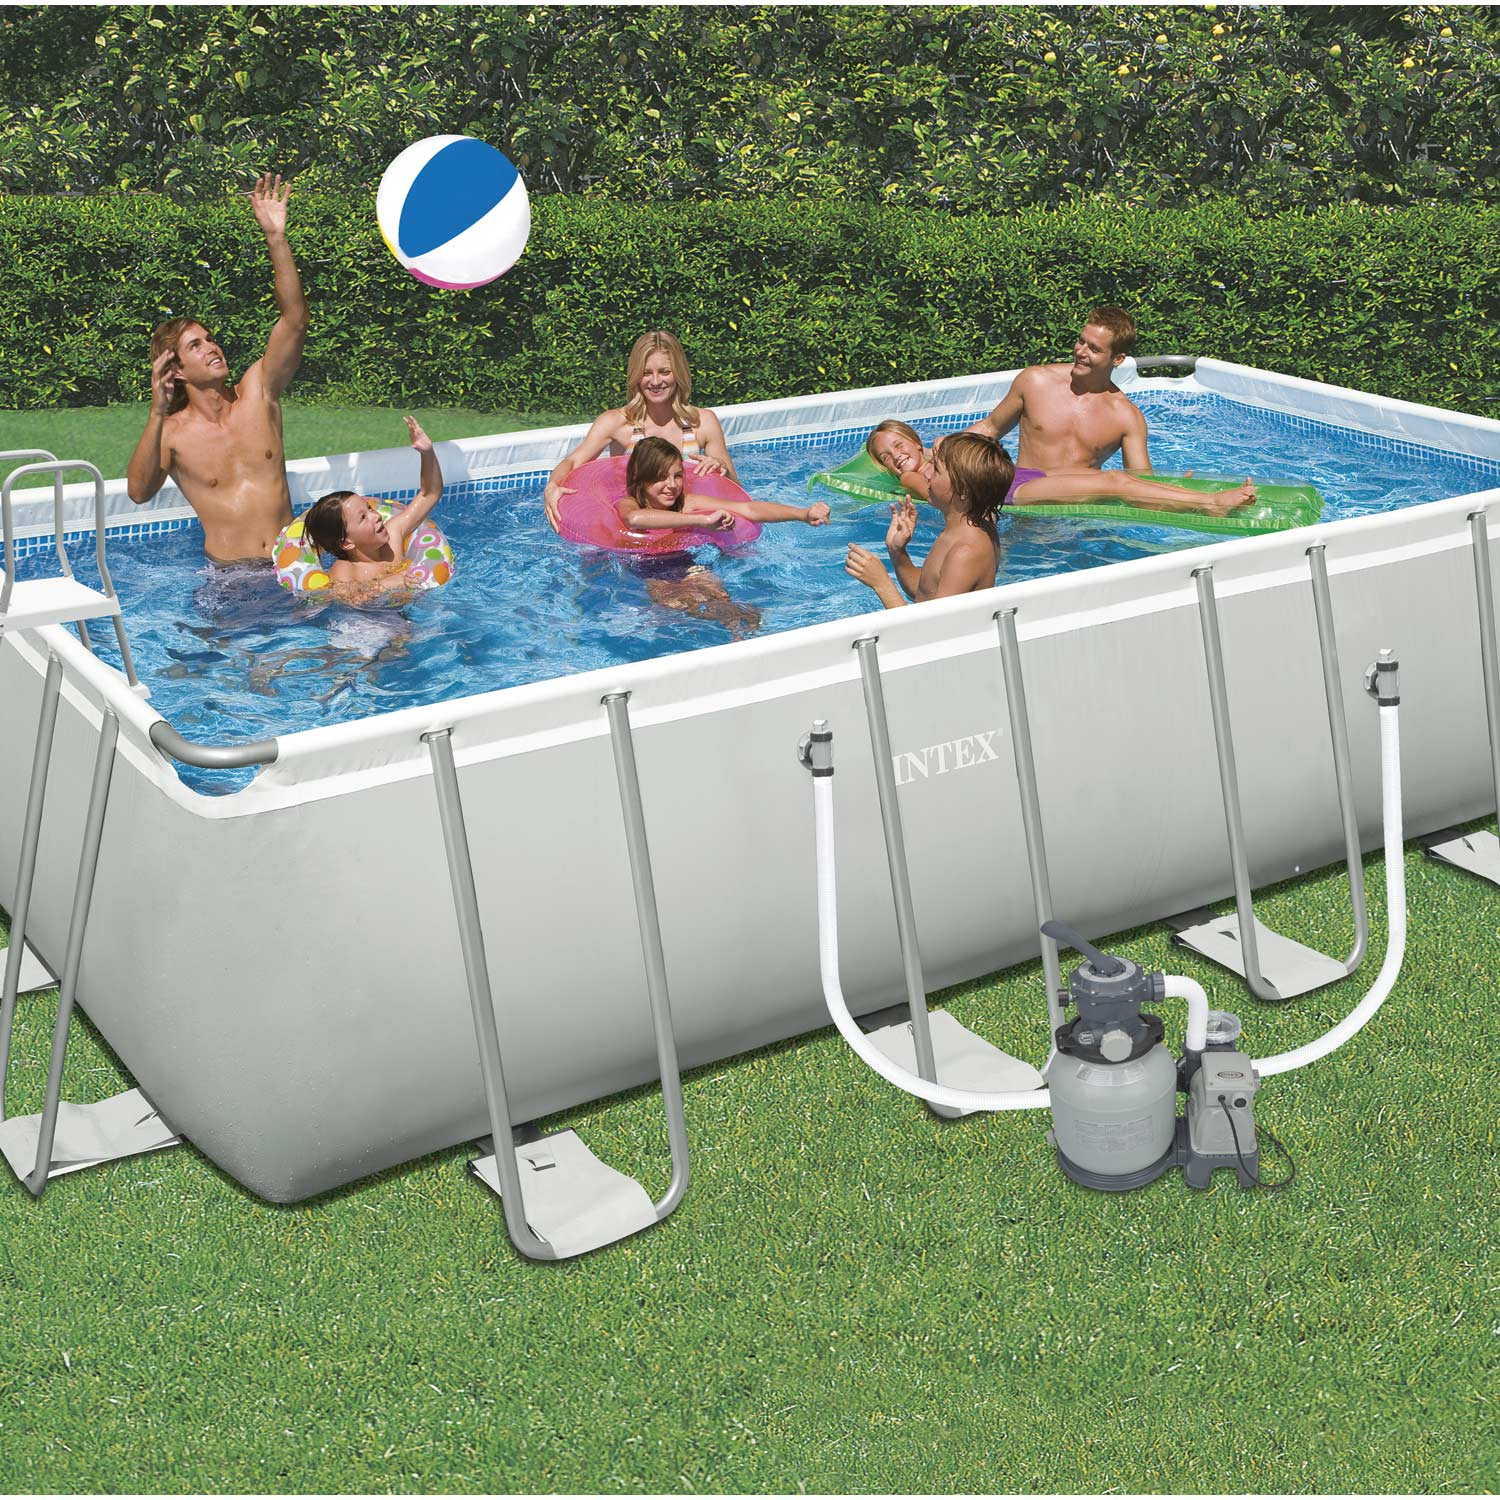 Piscine hors sol autoportante tubulaire ultra silver intex for Piscine hors sol destockage